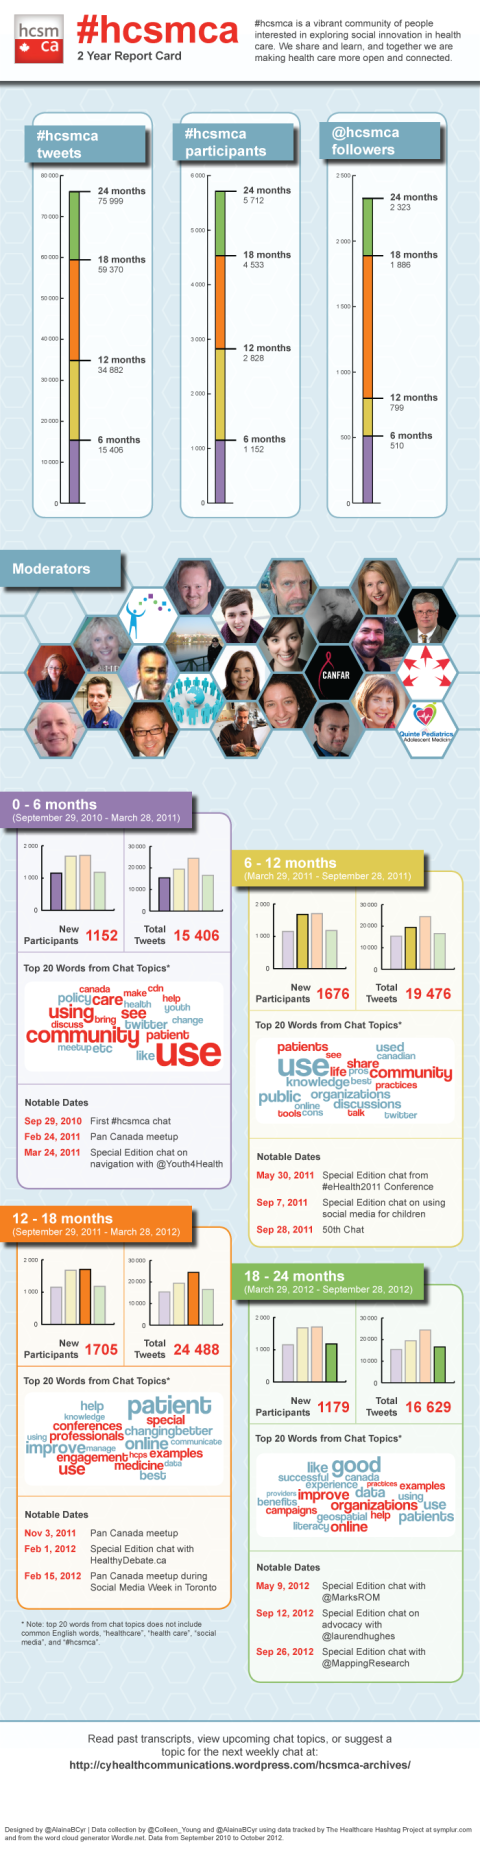 2 year infographic